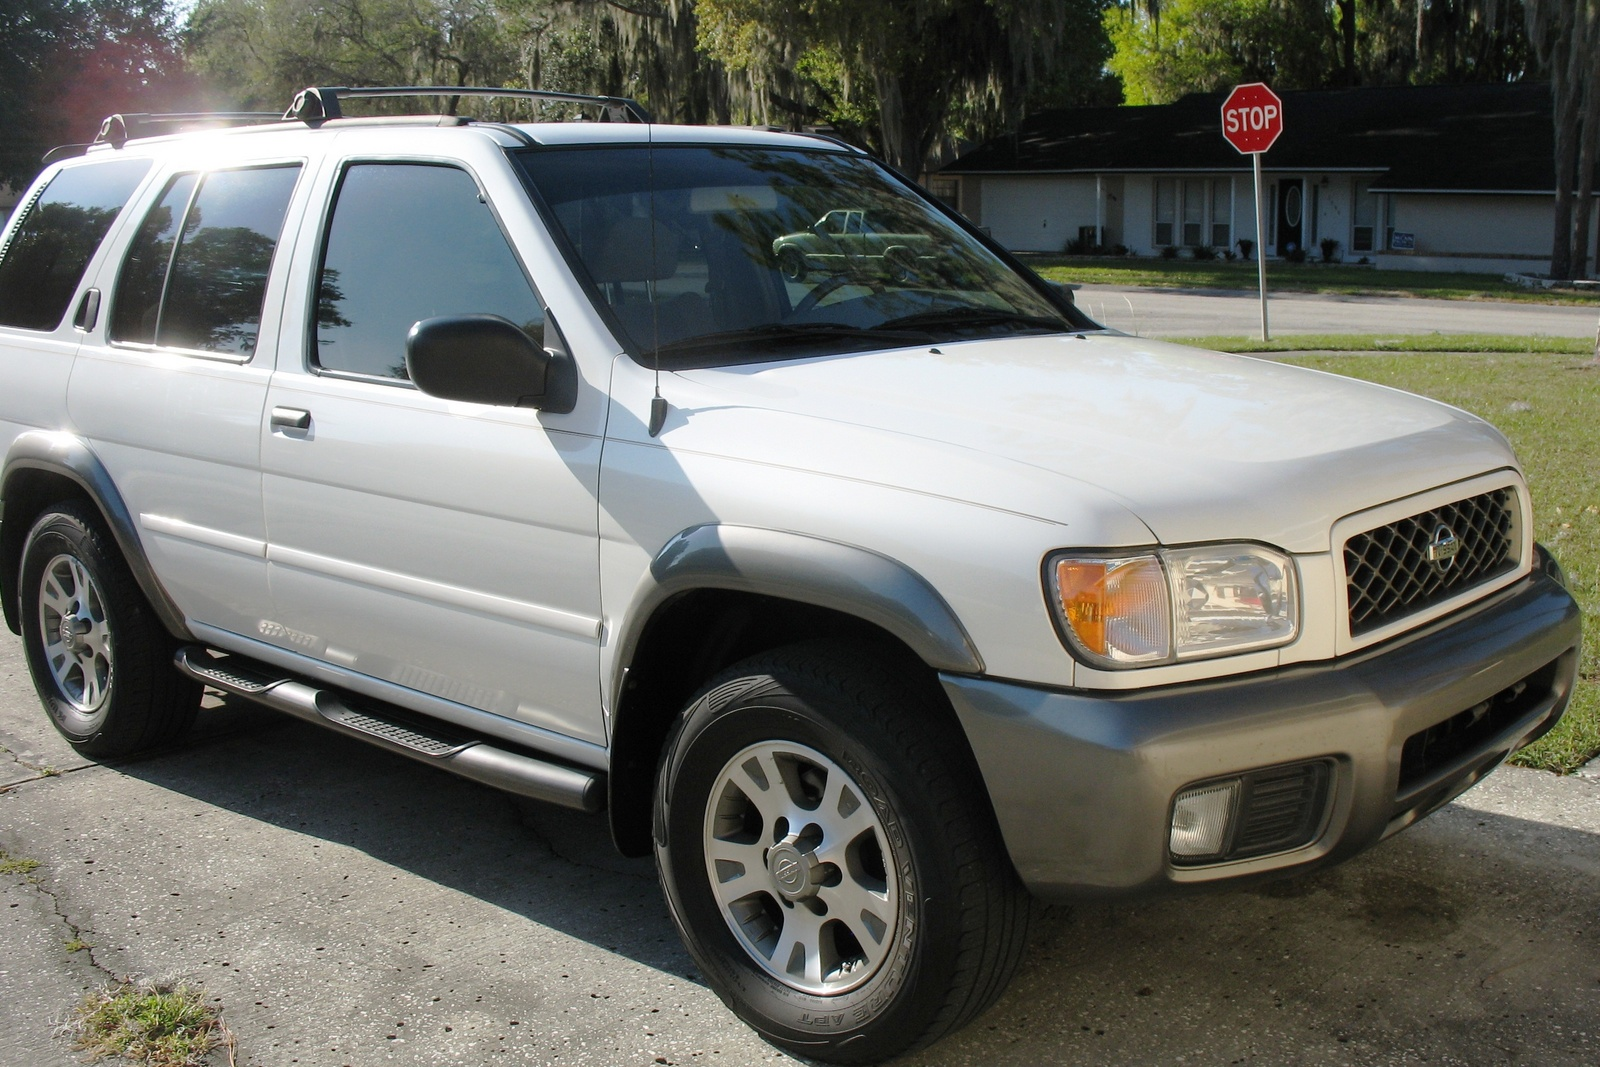 Toyota Highlander 2013 Price Picture of 2001 Nissan Pathfinder XE, exterior